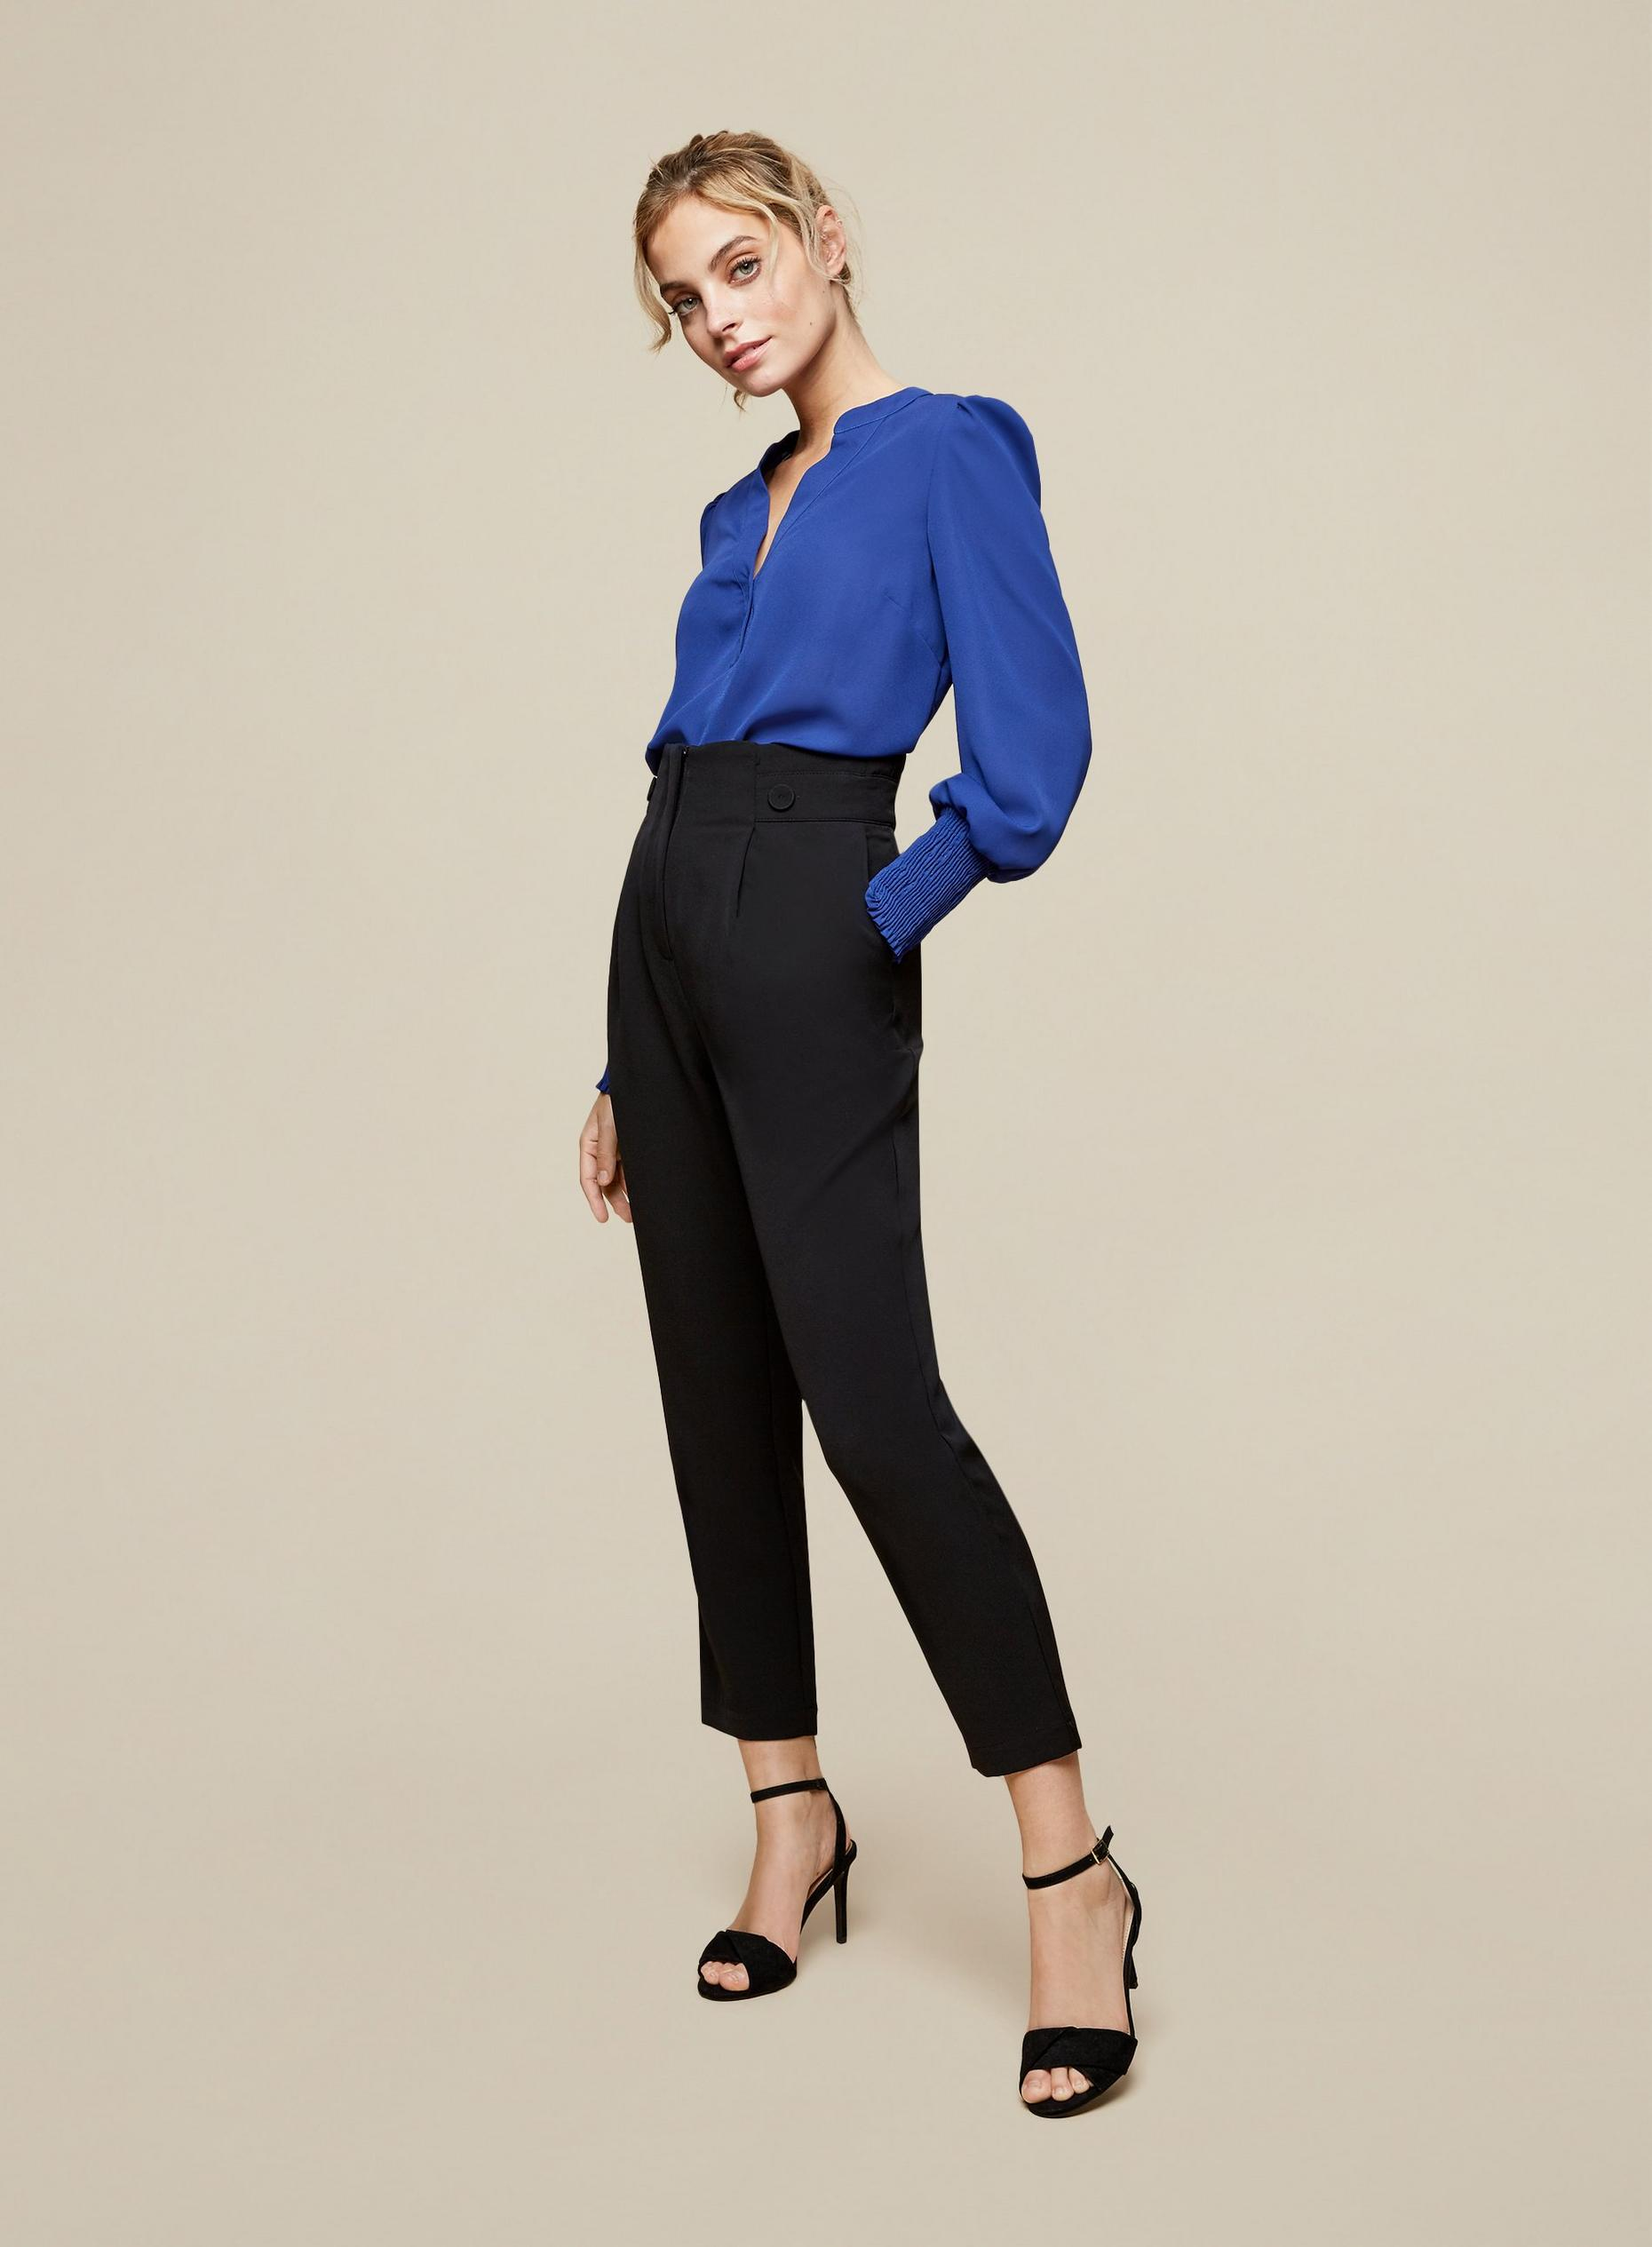 DP Petite Black Tailored Trousers